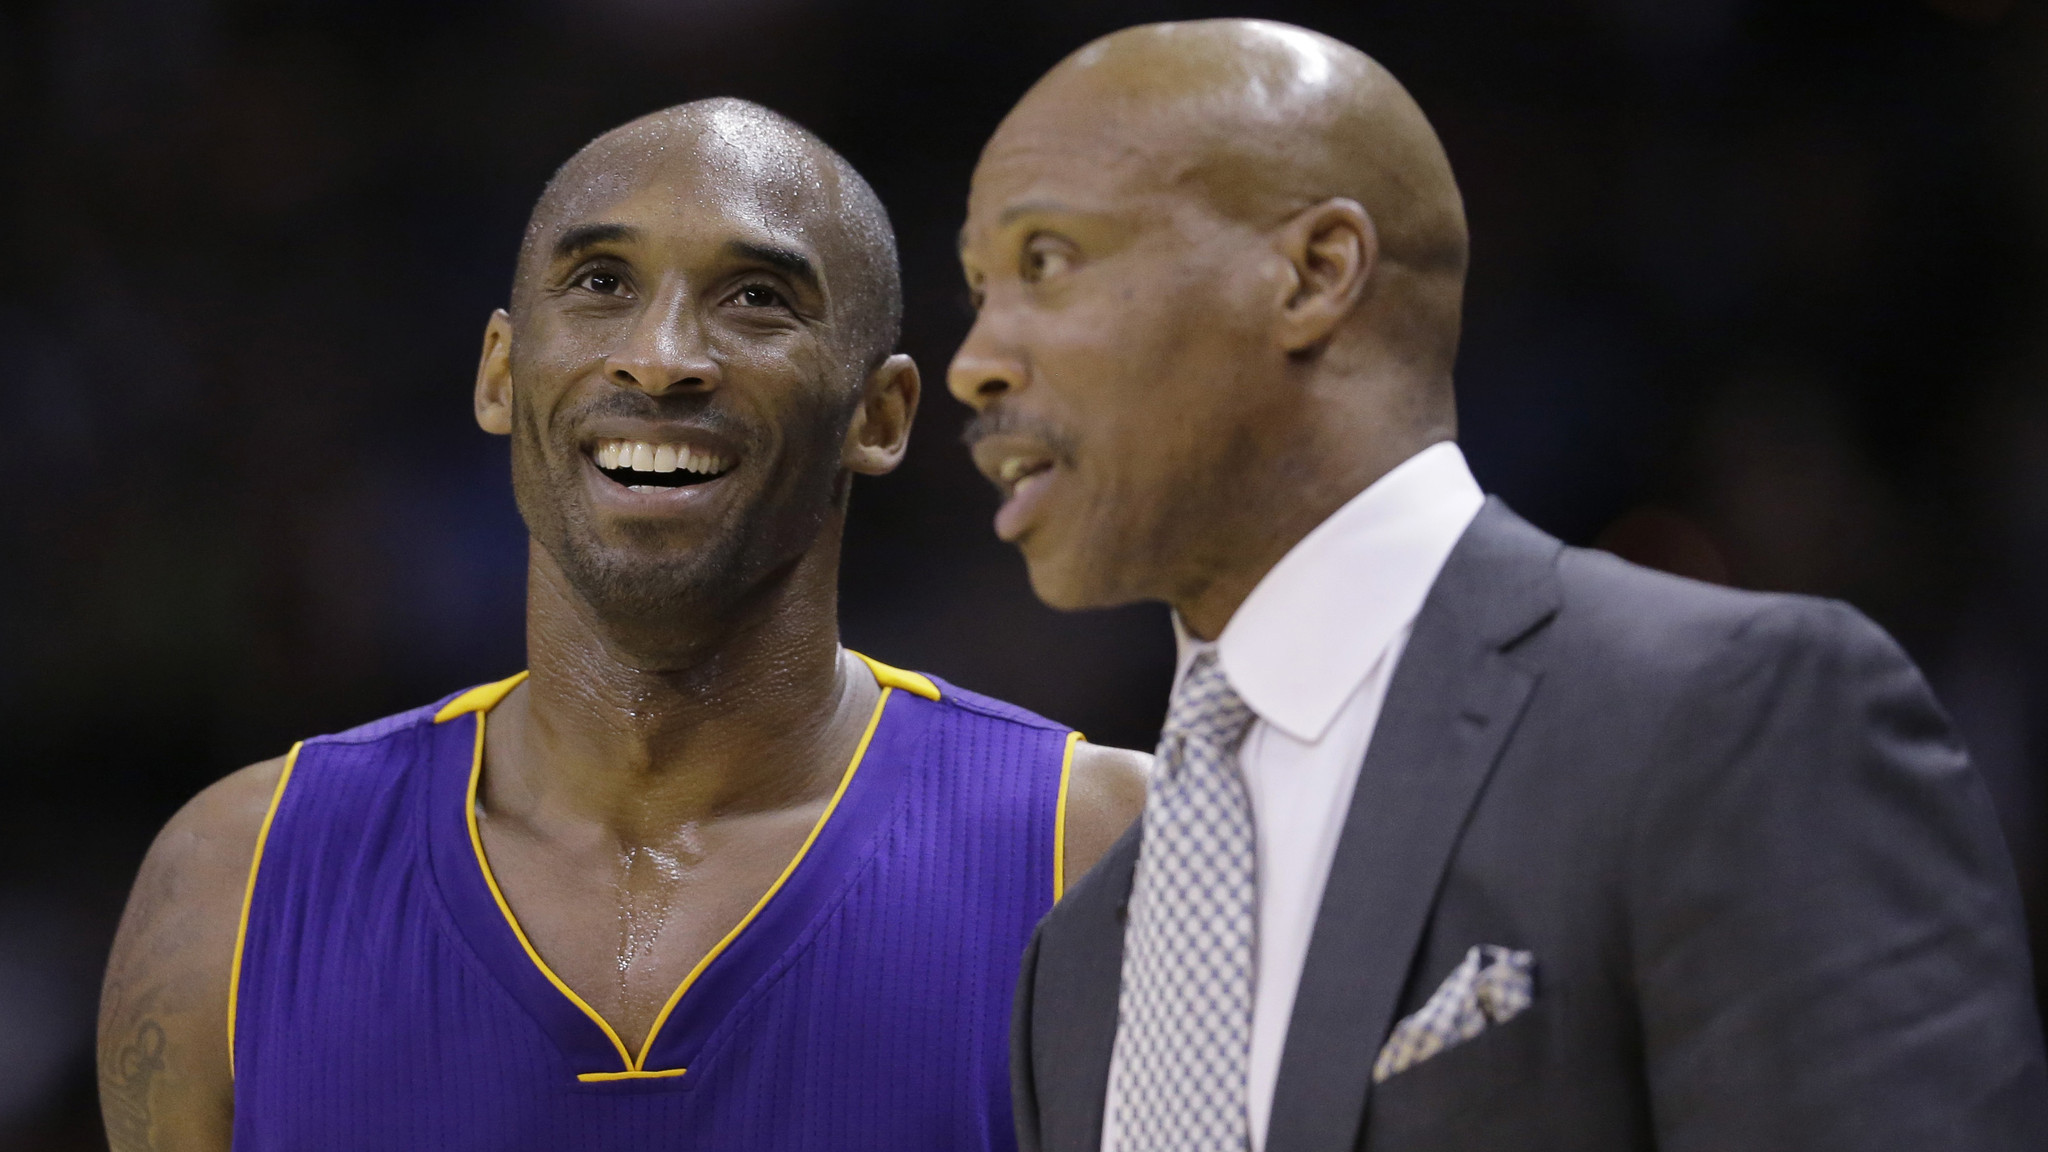 Byron Scott would like Kobe Bryant to look more for his own shot